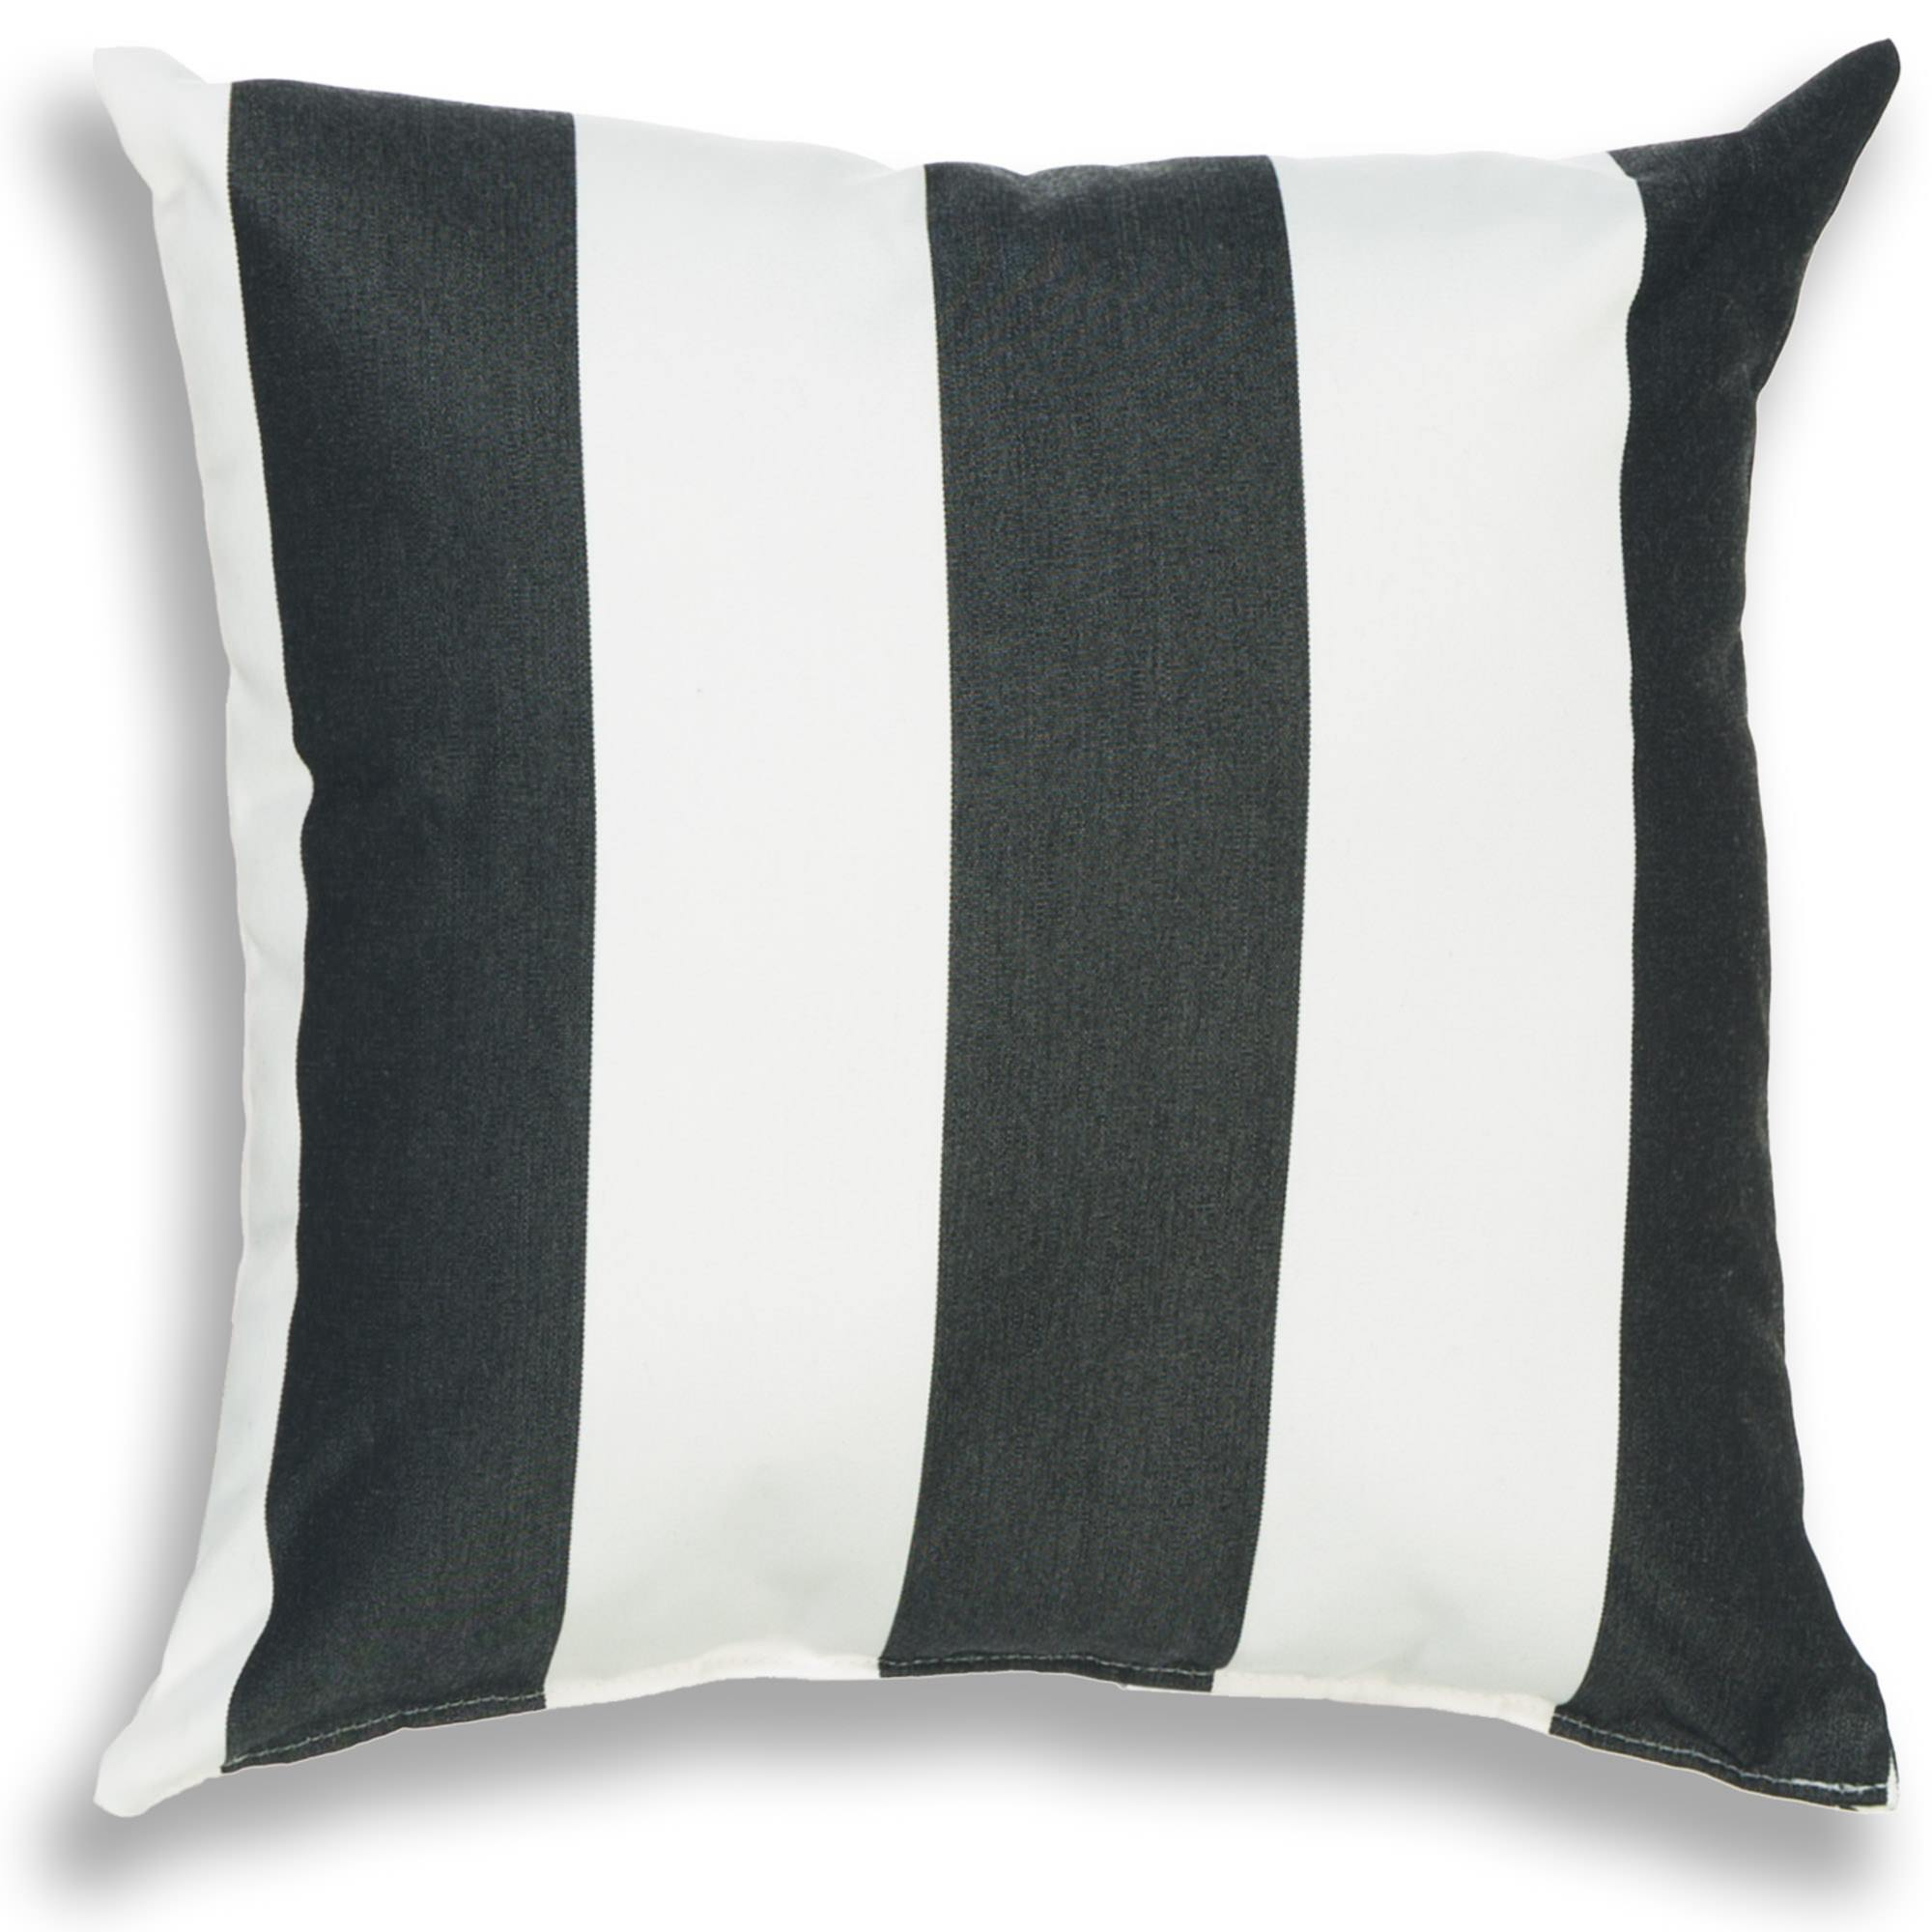 Cabana Black Outdoor Pillow 18 x 18 on Sale